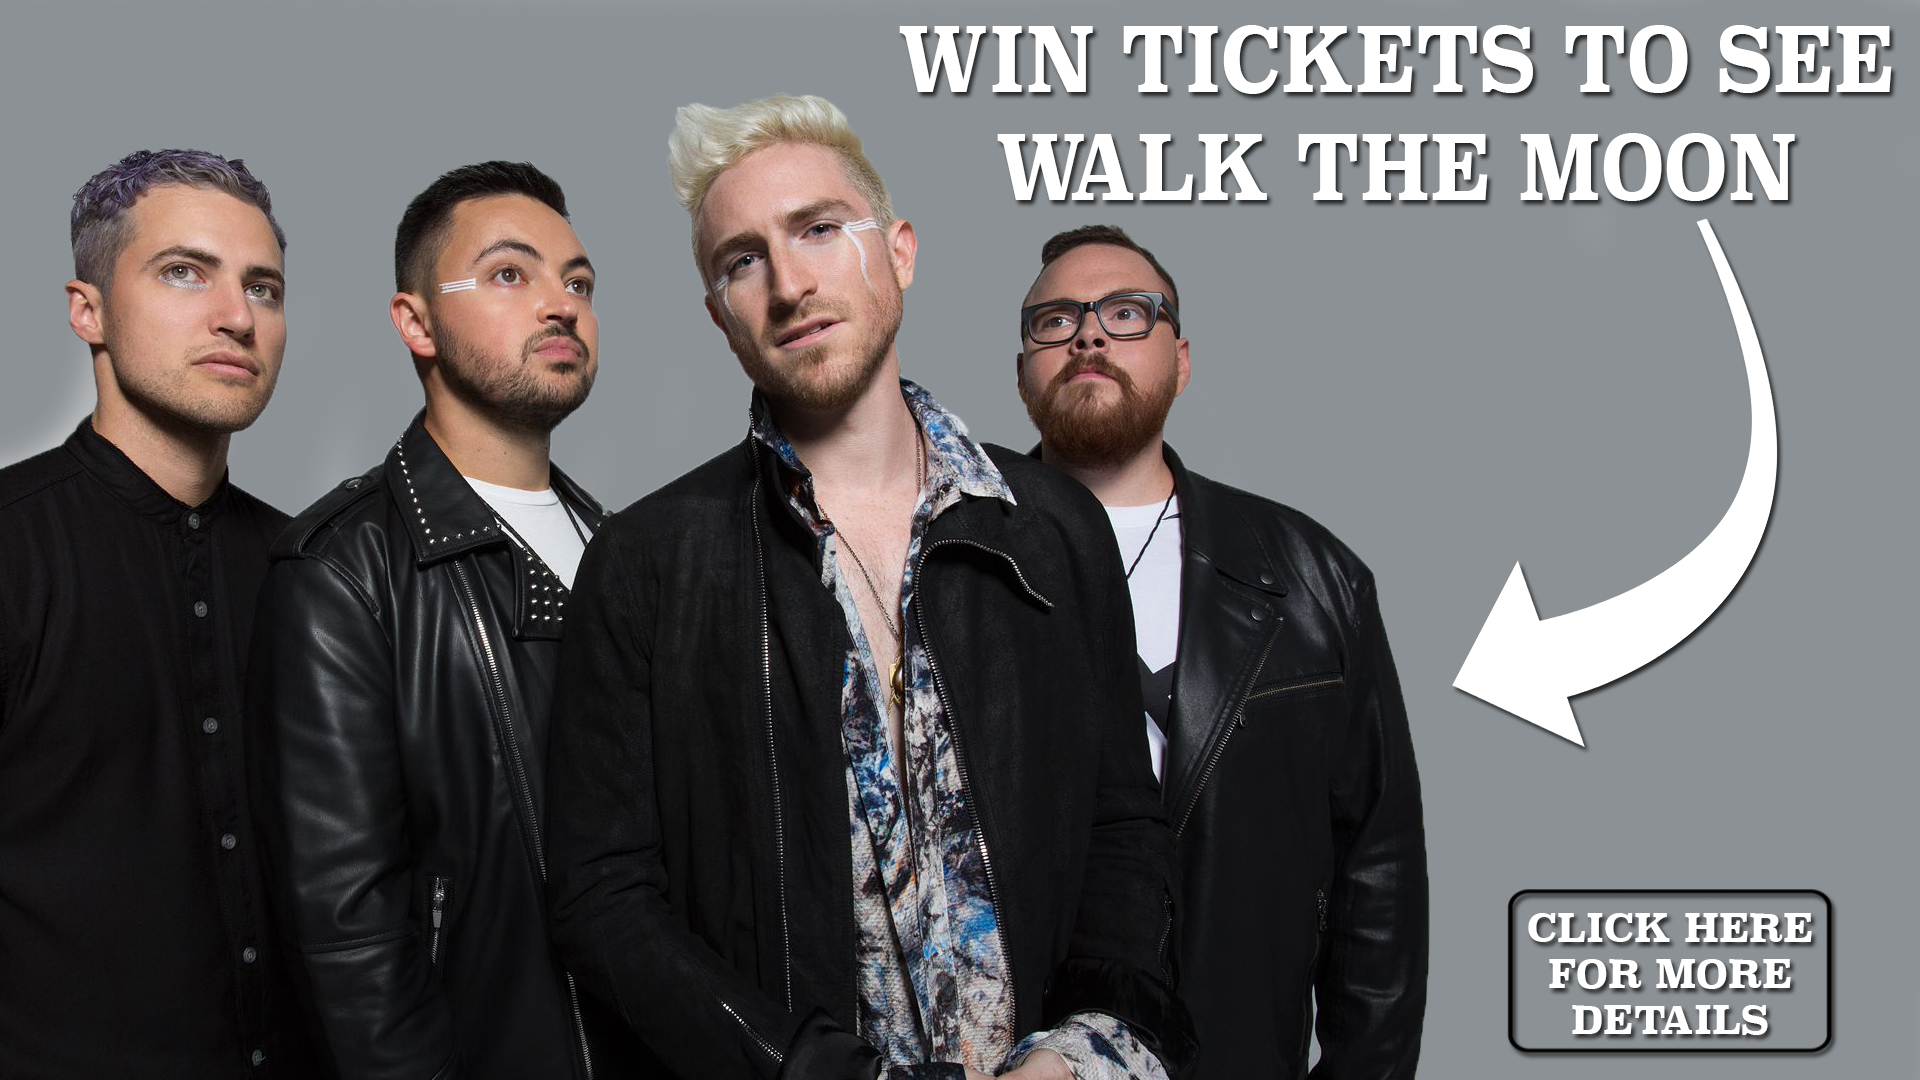 Win Tickets to see Walk The Moon